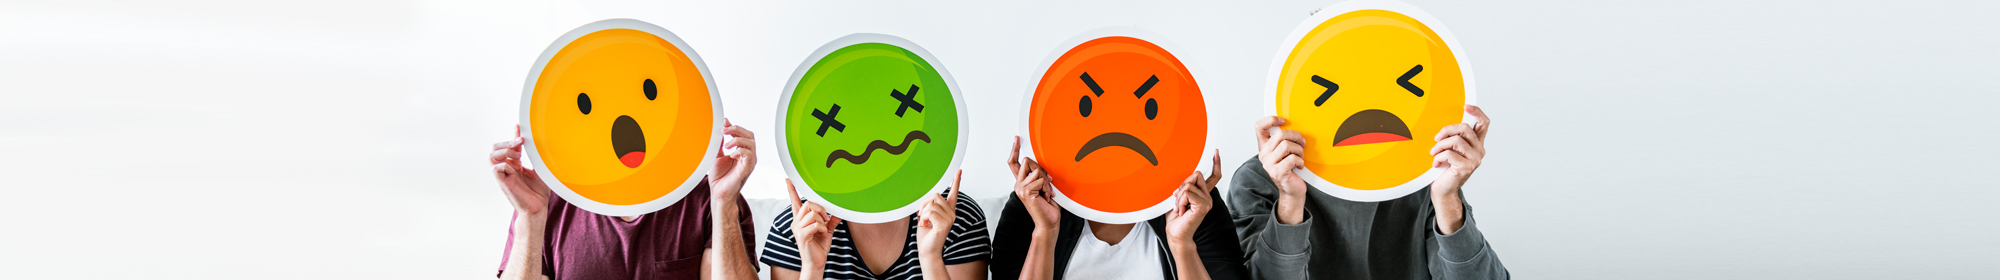 diverse group holding unhappy emoticons in front of their faces